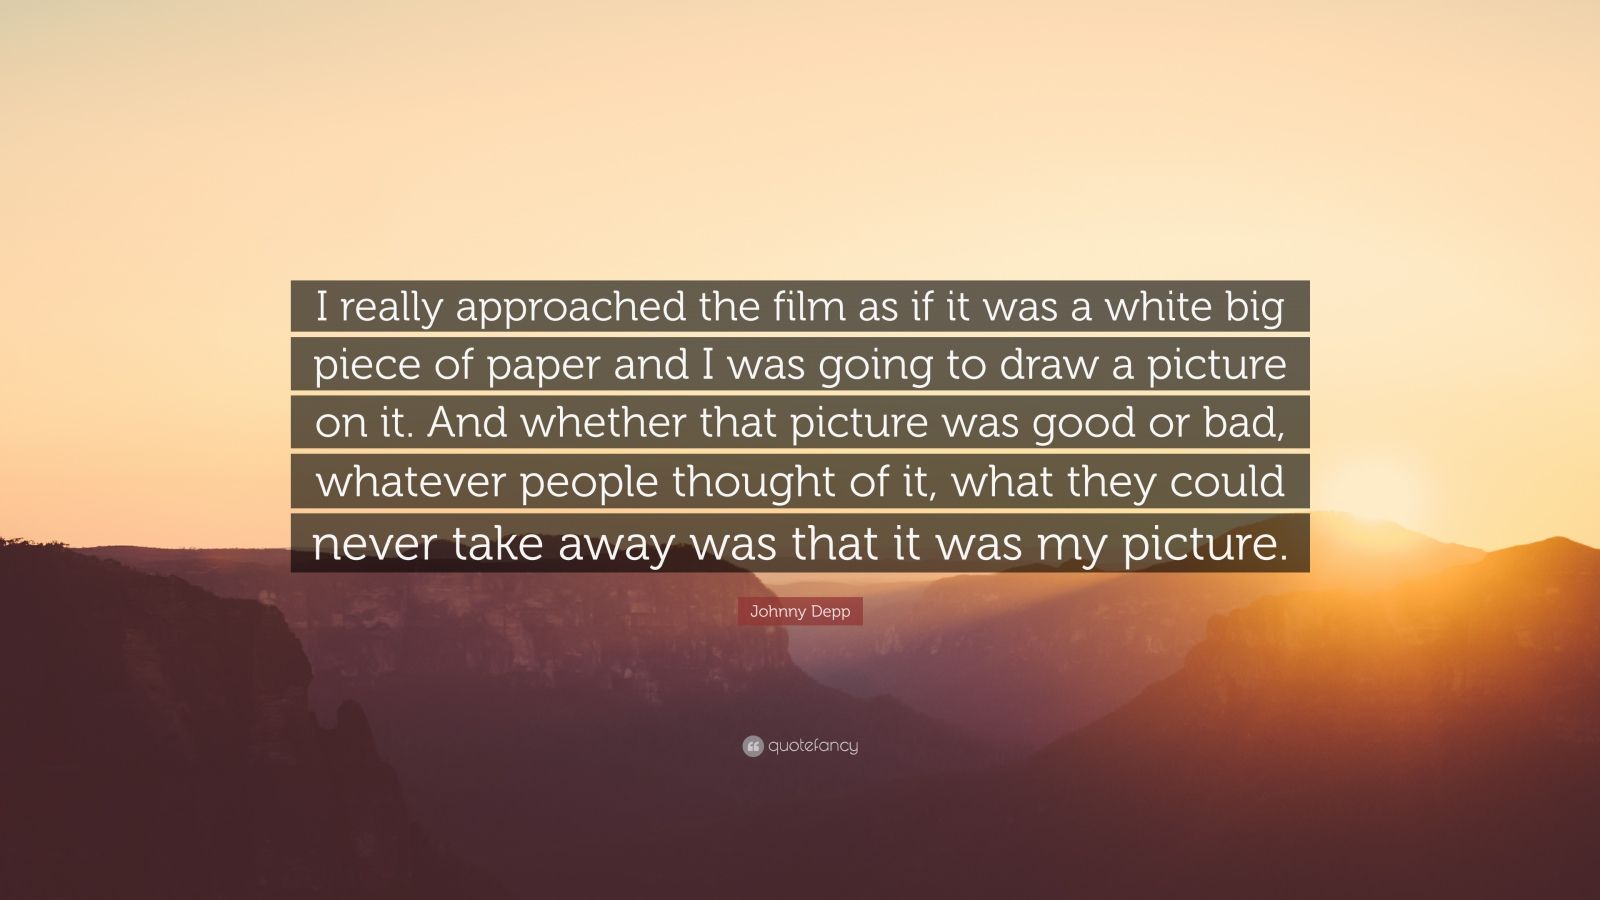 """Johnny Depp Quote: """"I really approached the film as if it was a white big piece of paper and I was going to draw a picture on it. And whether that picture was good or bad, whatever people thought of it, what they could never take away was that it was my picture."""""""